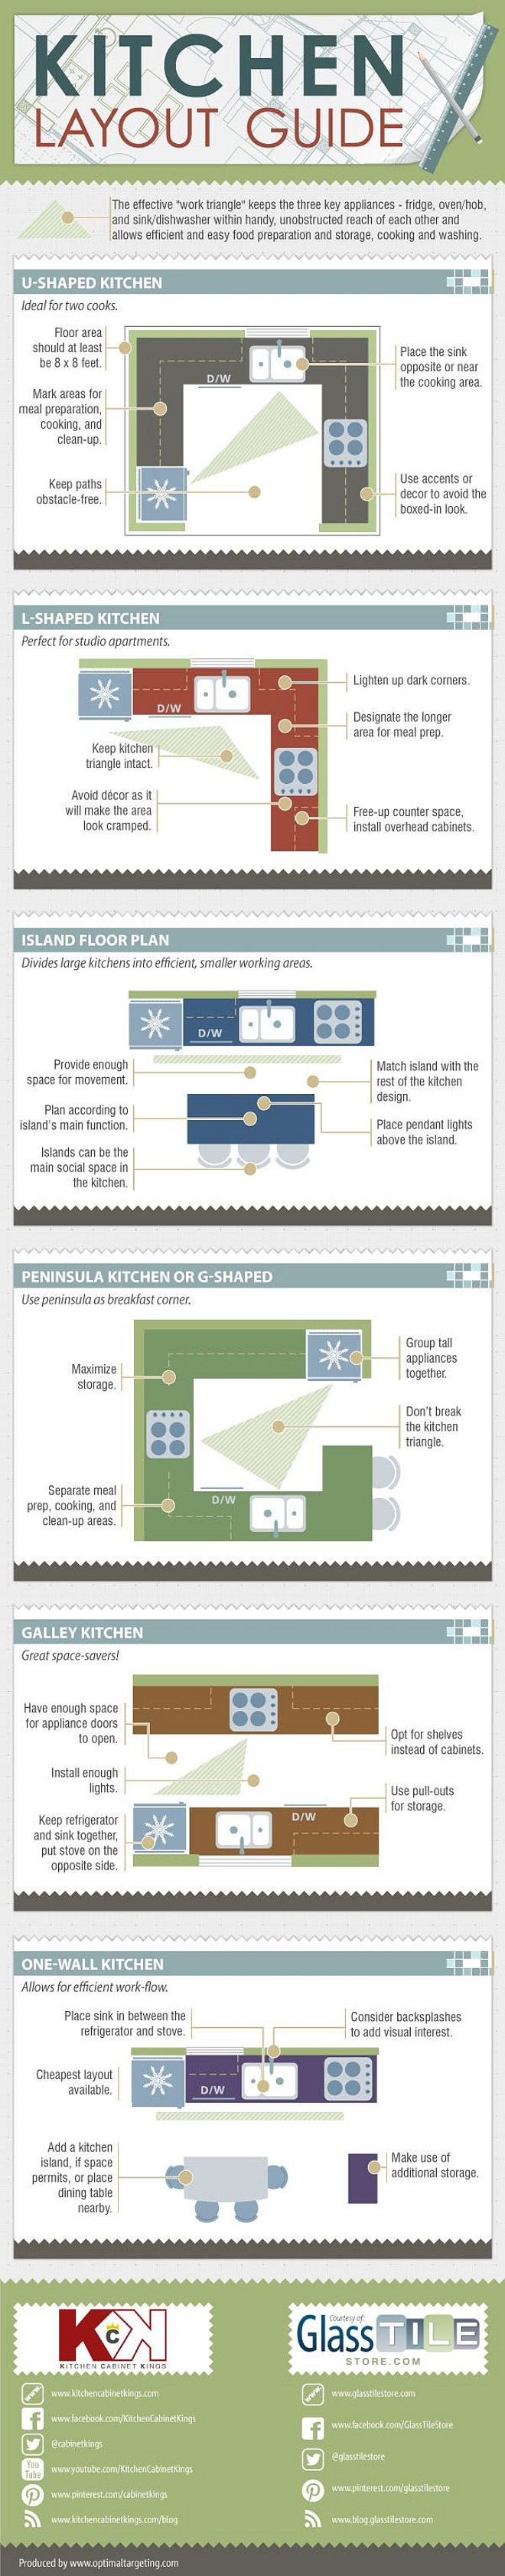 Laying Out Kitchen Cabinets 25 Best Ideas About Kitchen Cabinet Layout On Pinterest Hanging